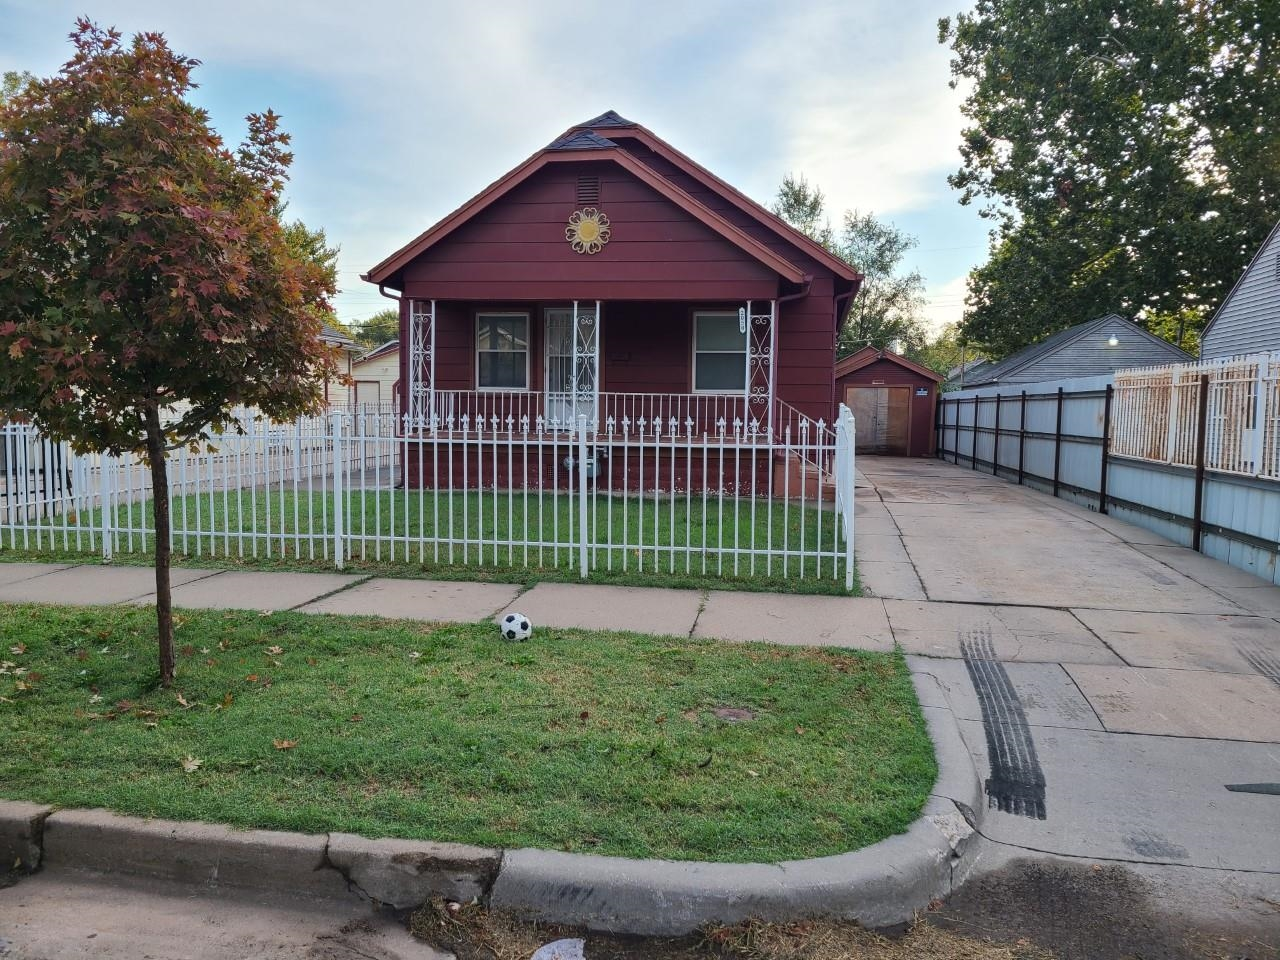 Great starter house for a young couple and or a small family. With ample space on the back and back